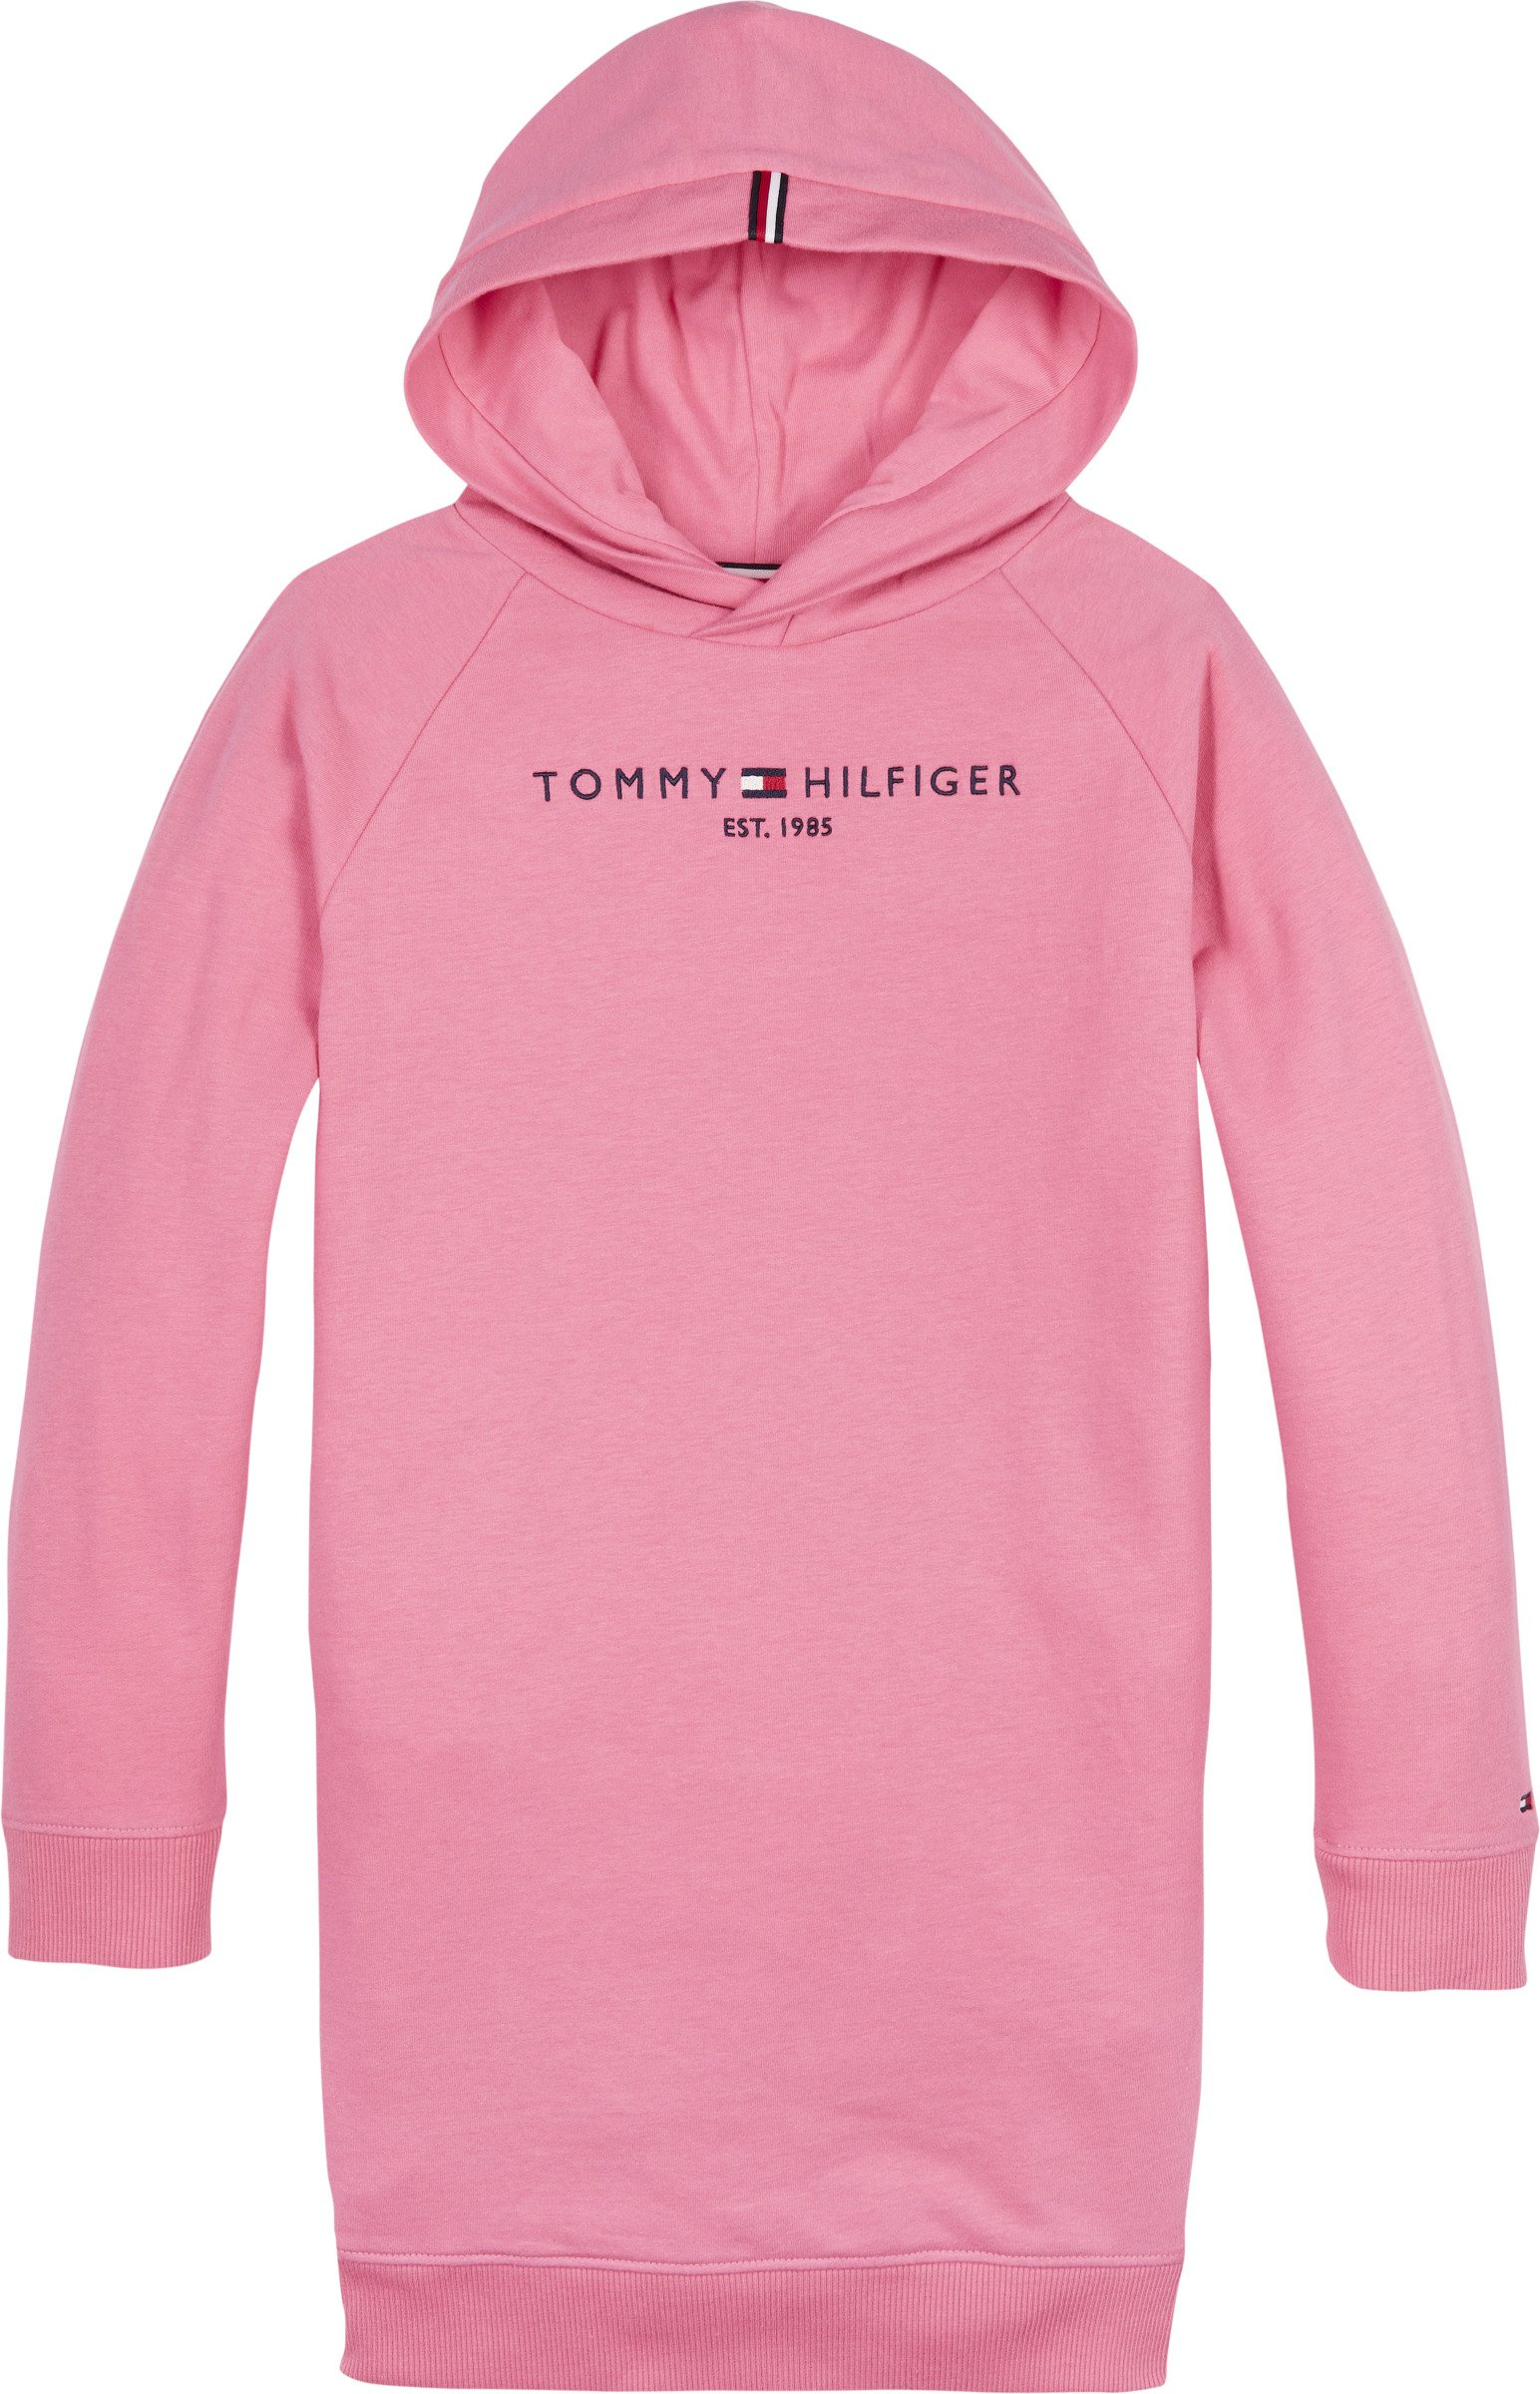 Tommy Hilfiger, essential hooded sweatdress l/s collegemekko, pinkki